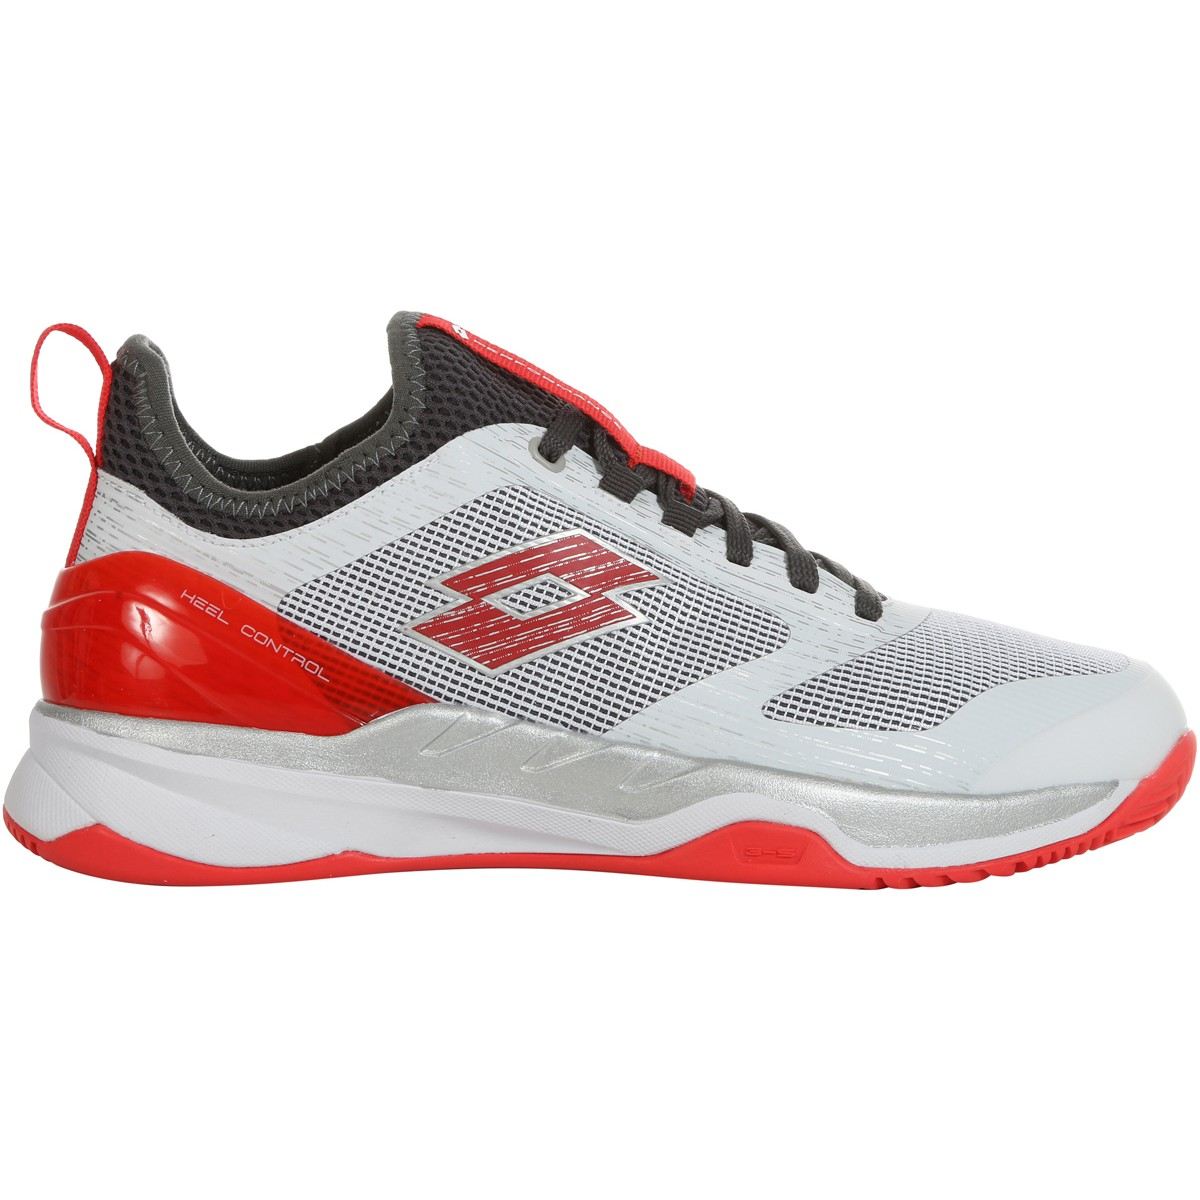 LOTTO MIRAGE 200 CLAY COURT SHOES